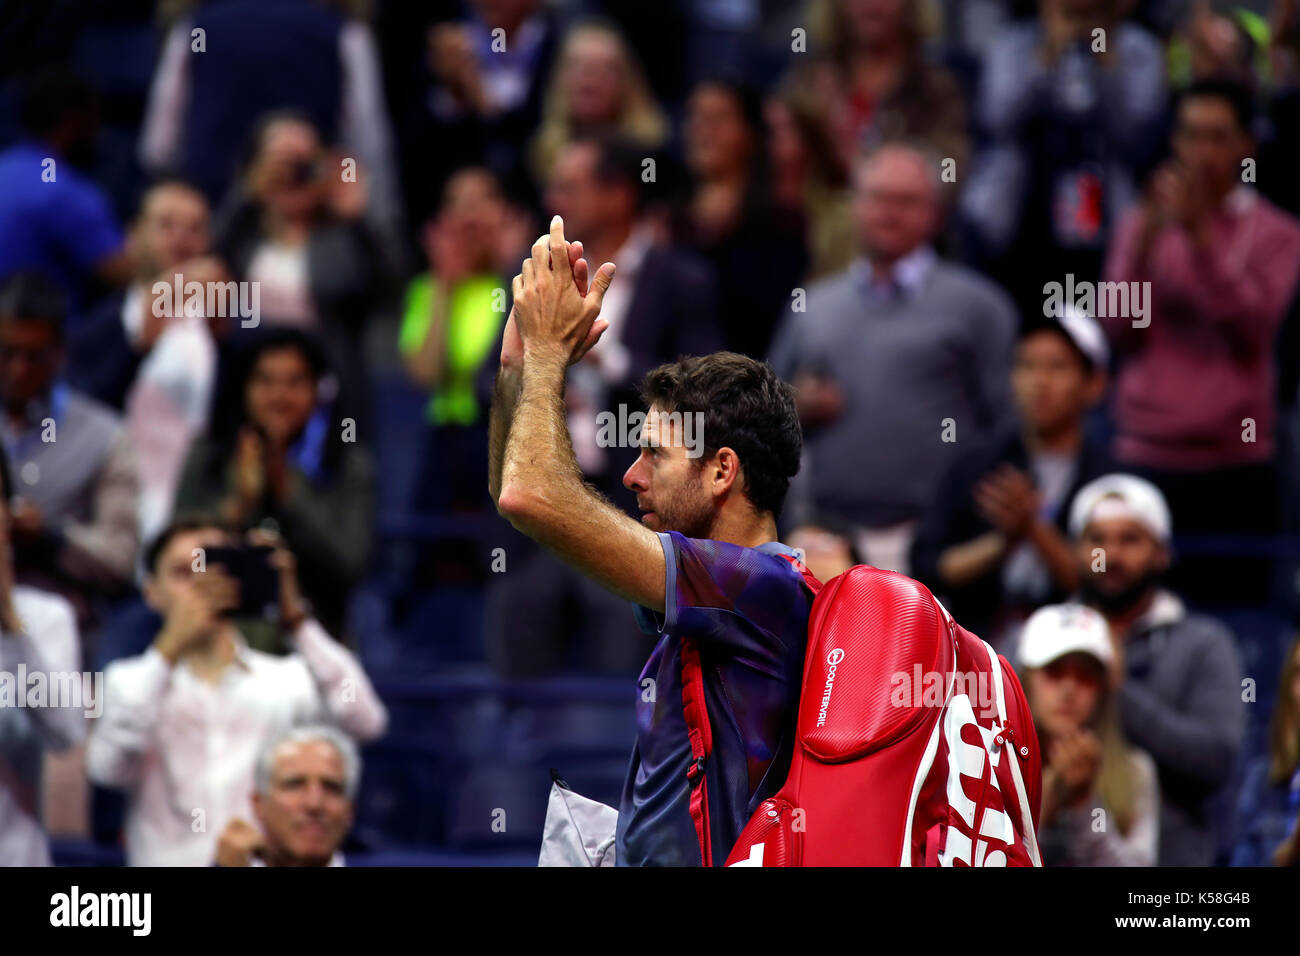 New York, United States. 08th Sep, 2017. US Open Tennis: New York, 8 September, 2017 - Argentina's Juan Martin del Potro acknowledges the crowd after being defeated by Rafael Nadal of Spain in their semi final match at the US Open in Flushing Meadows, New York. Credit: Adam Stoltman/Alamy Live News - Stock Image